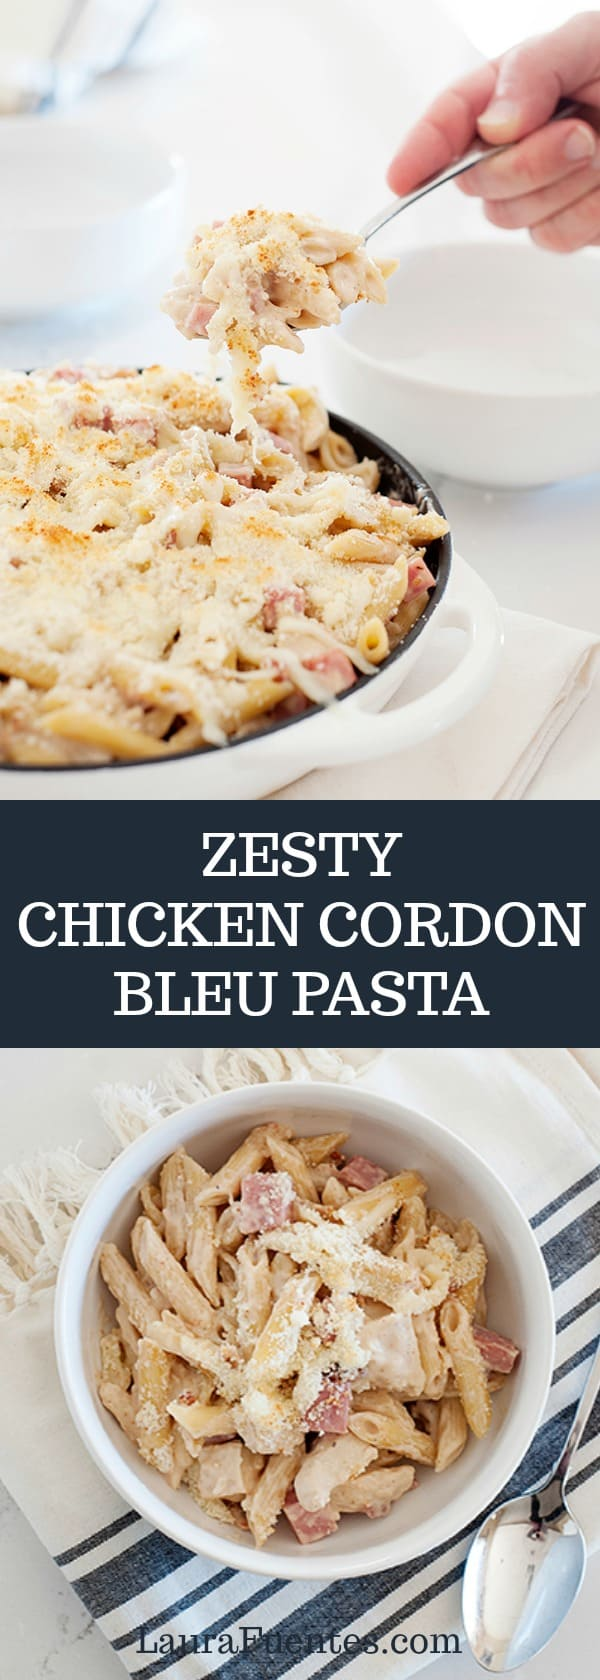 One bowl of this Zesty Chicken Cordon Bleu Pasta and you'll be smitten! Easy to make in less than 30 minutes.